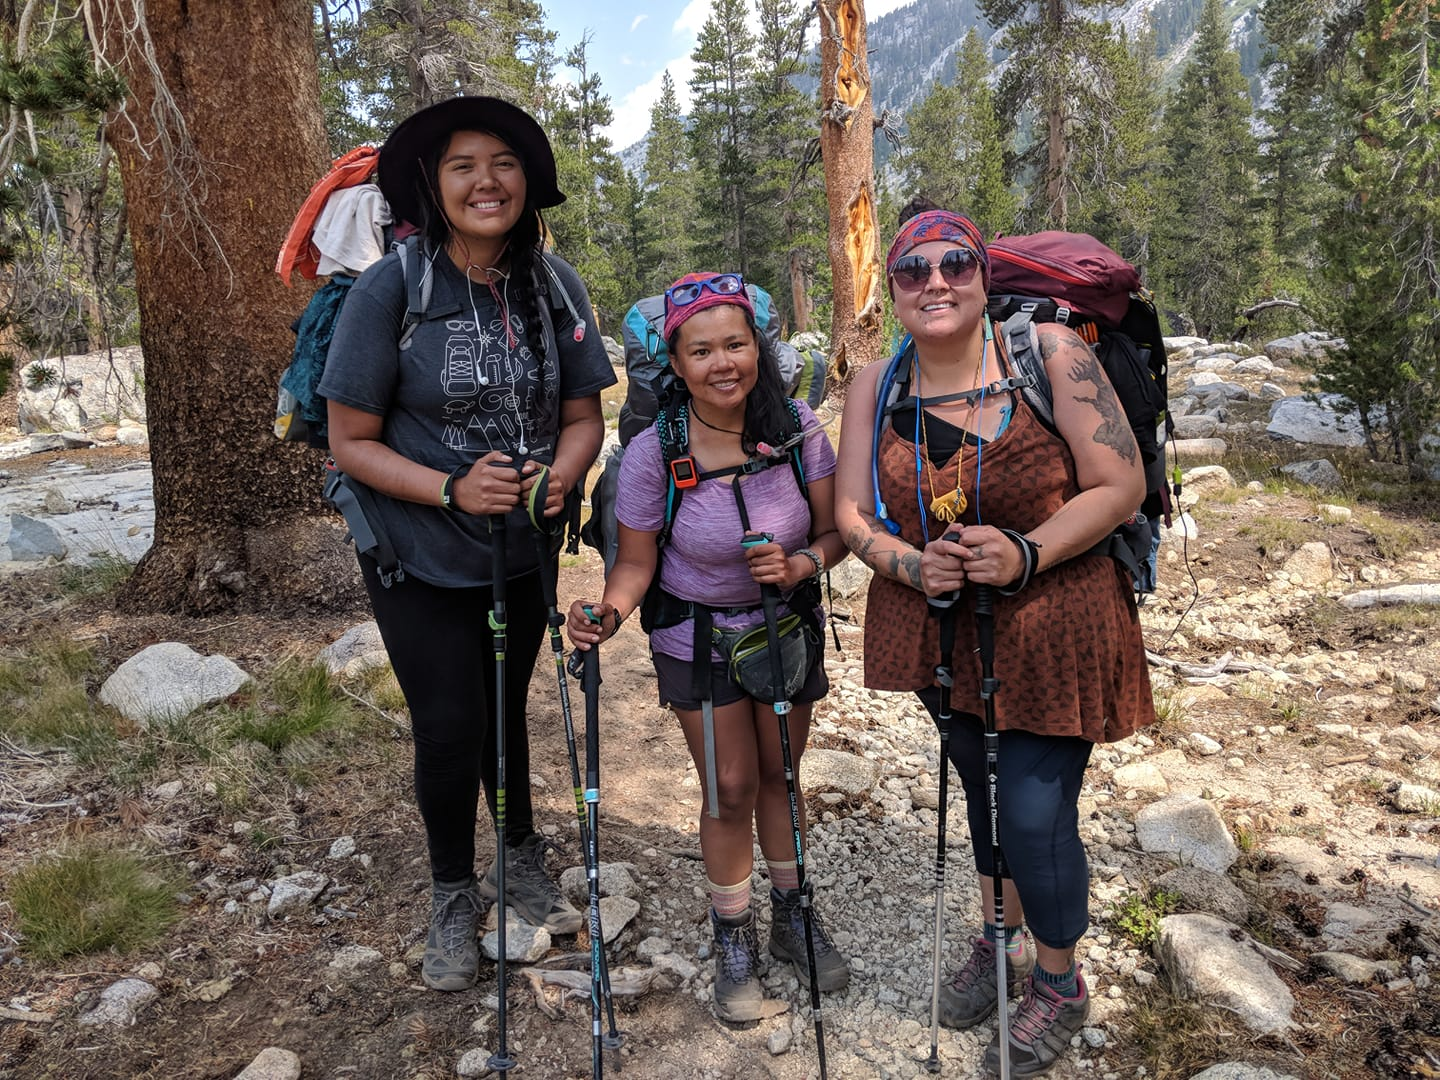 Likewise, the Indigenous Women Hikers are diversifying the outdoors.